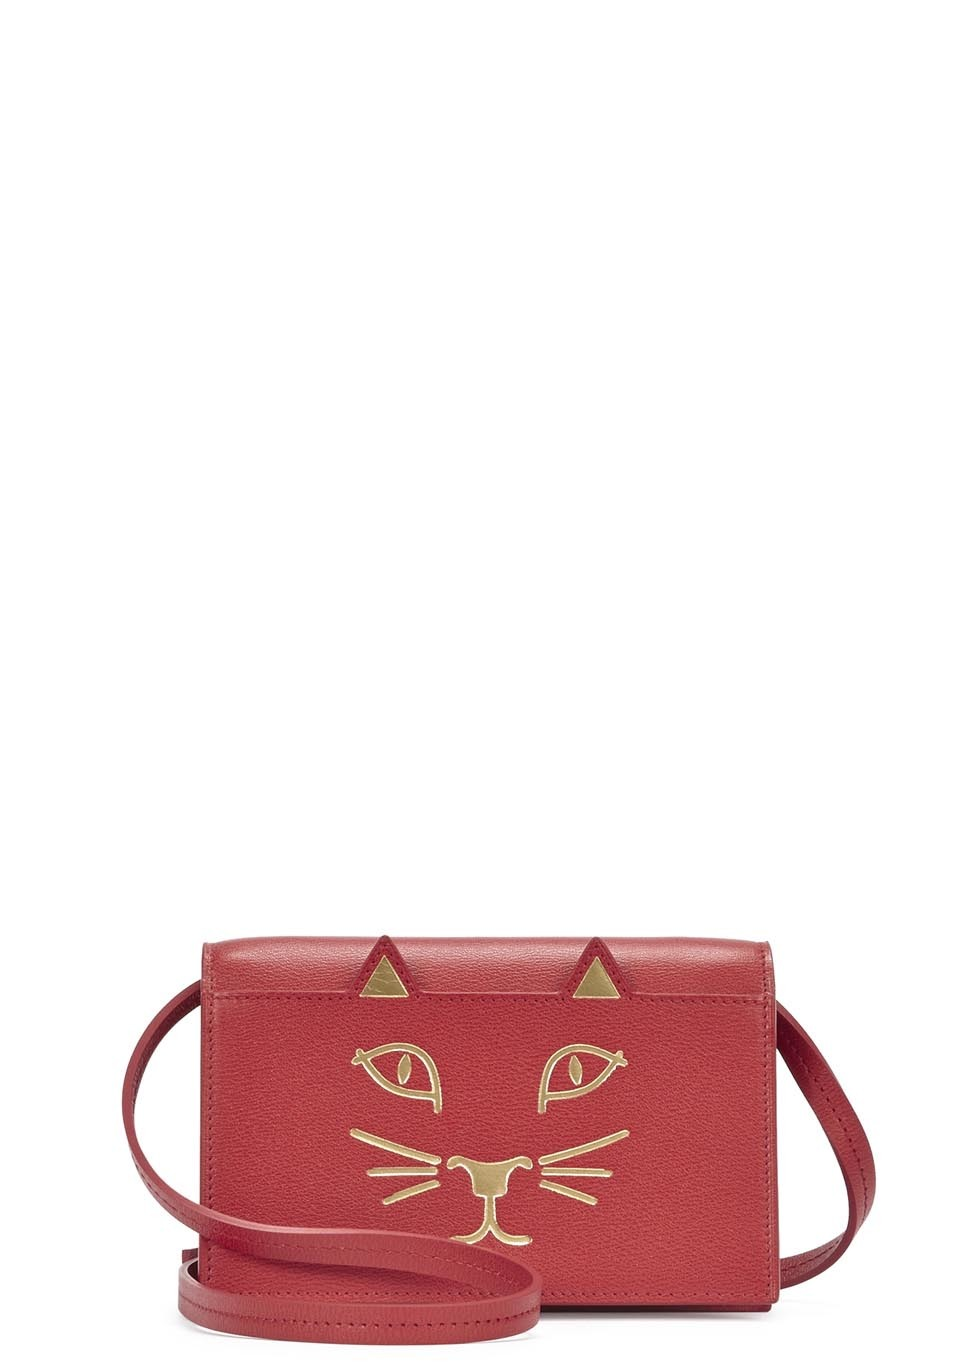 Mini Red Leather Cat Face Shoulder Bag - predominant colour: true red; secondary colour: gold; occasions: casual; type of pattern: standard; style: messenger; length: across body/long; size: mini; material: leather; finish: plain; pattern: patterned/print; season: s/s 2015; wardrobe: highlight